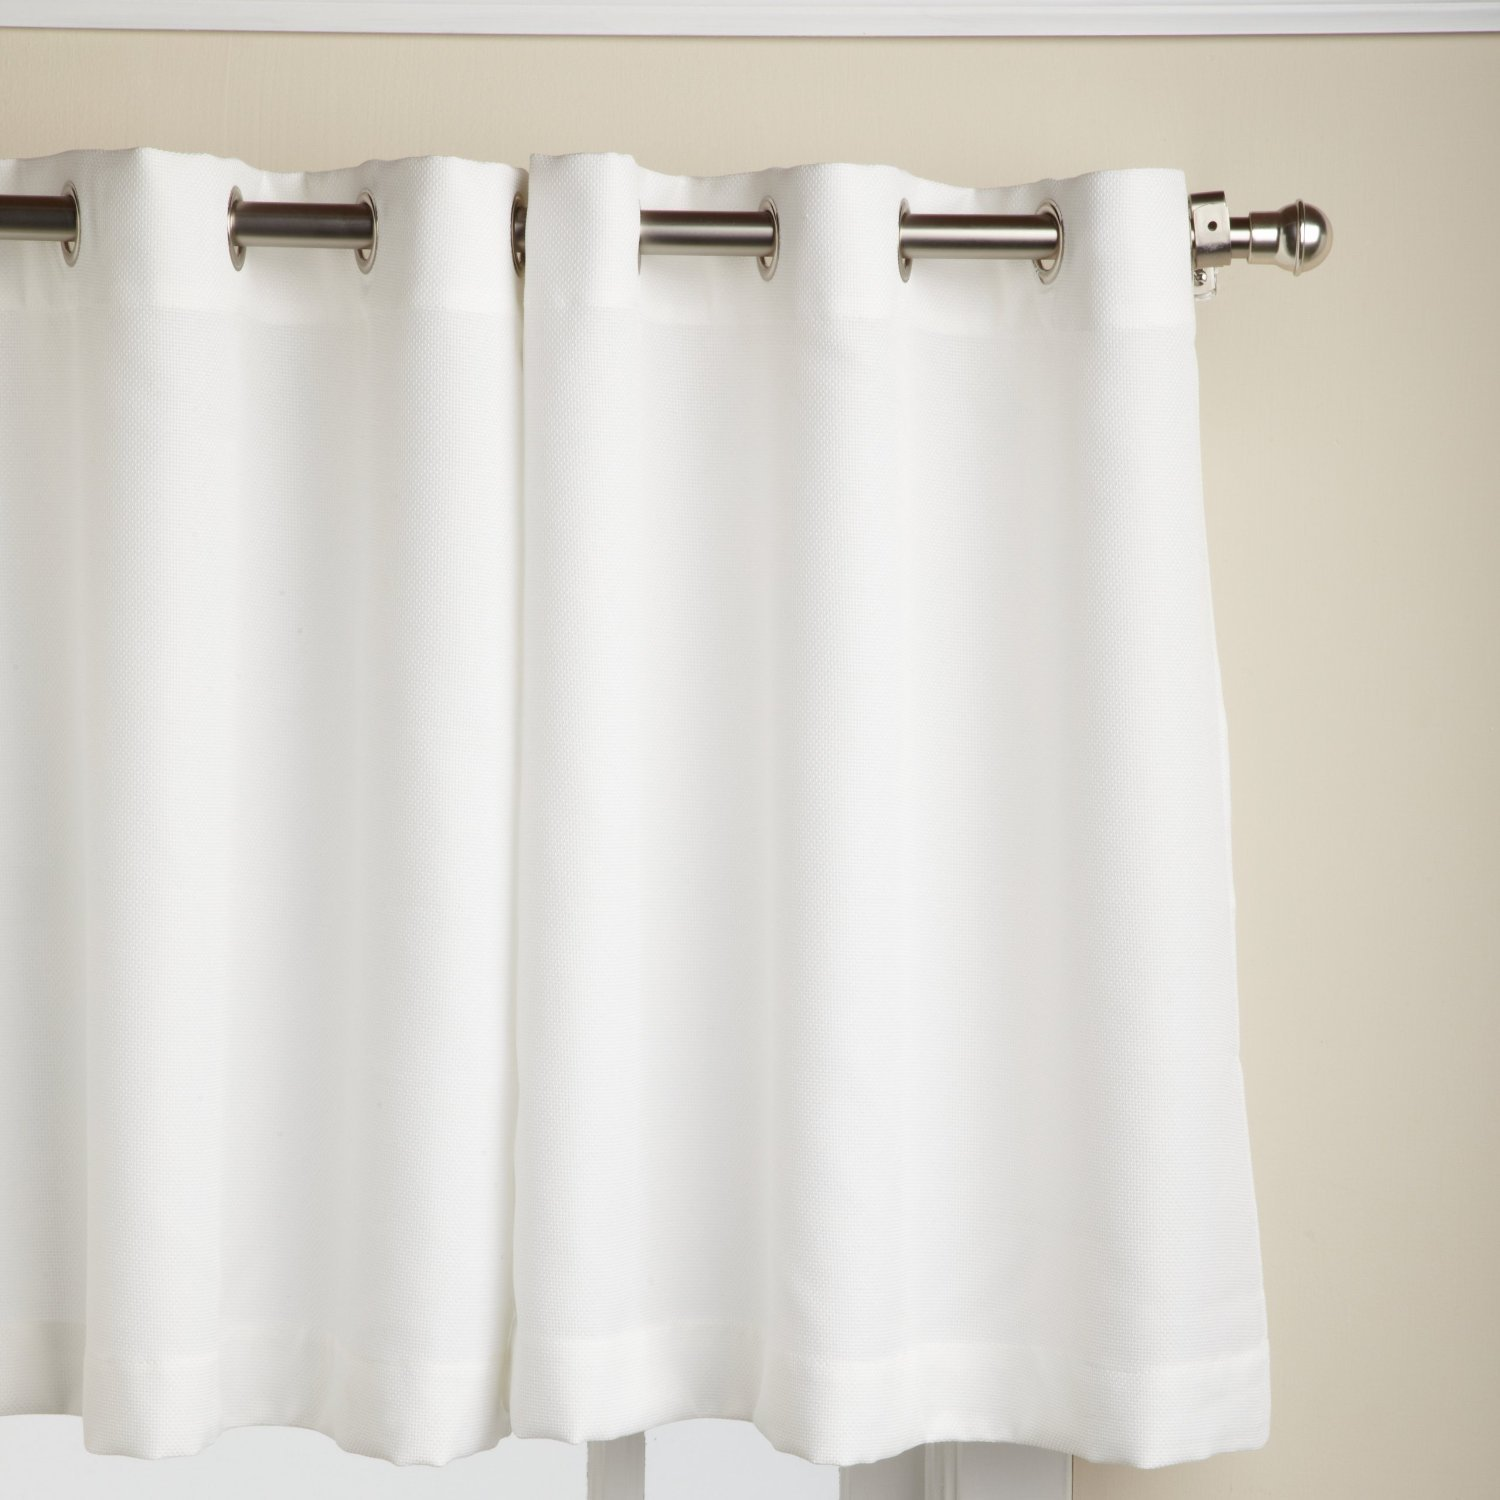 Amazon Lorraine Home Fashions Jackson 58 Inch X 24 Tier Curtain Pair White Kitchen